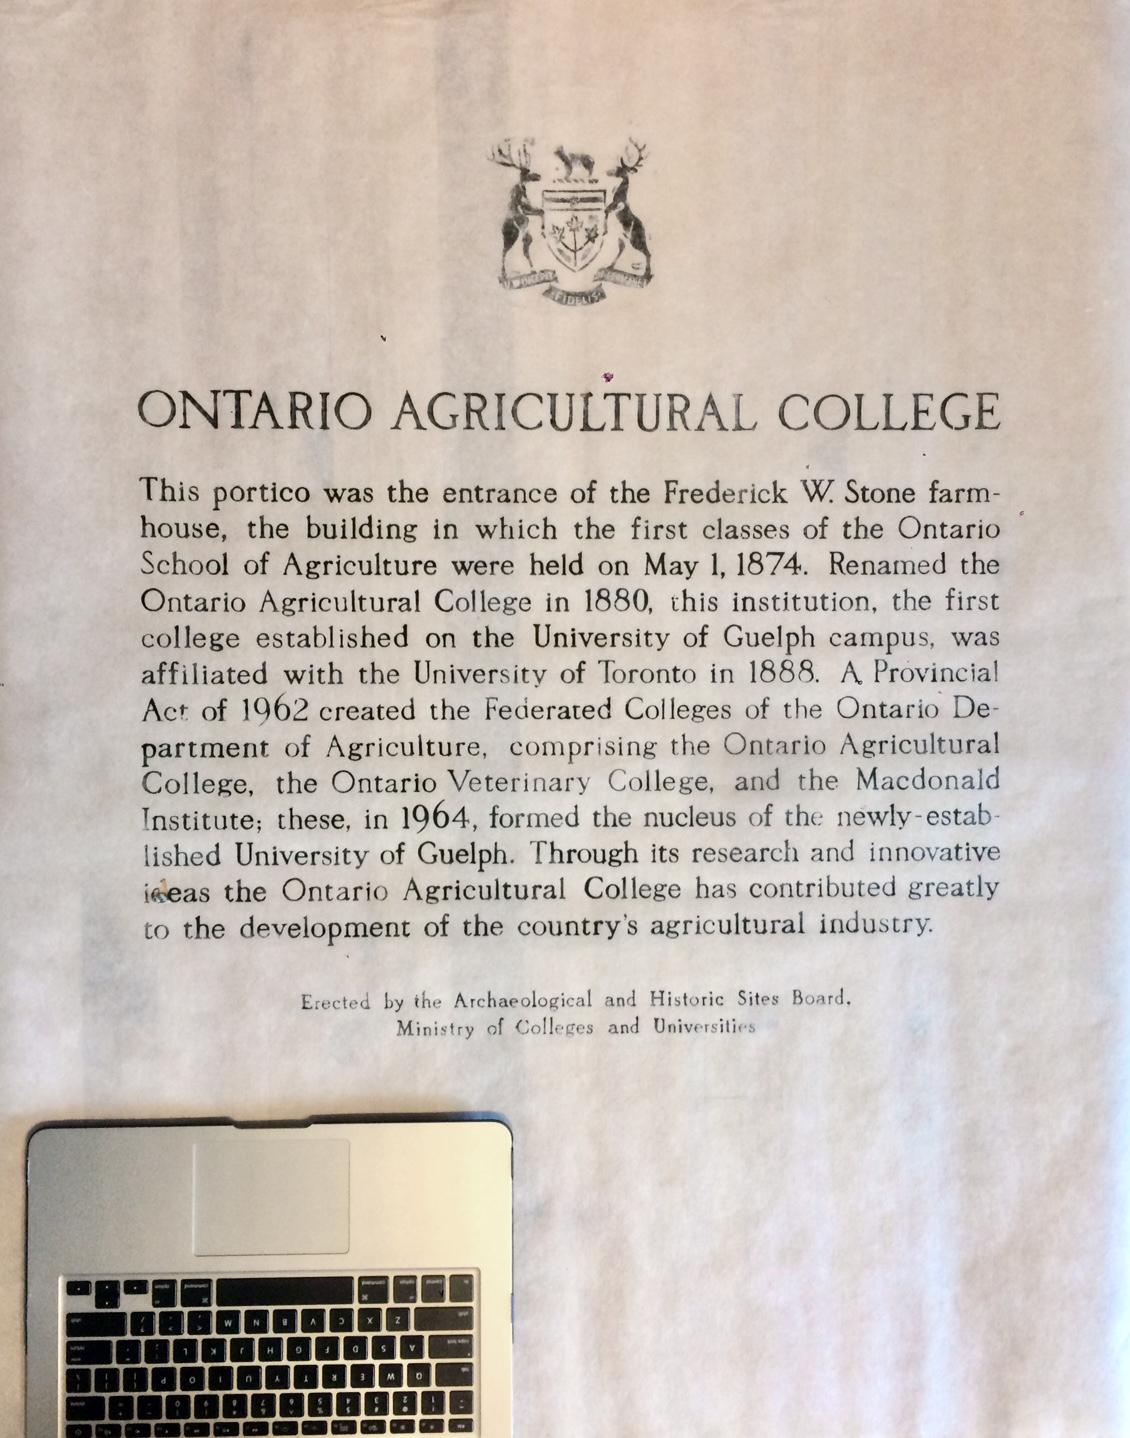 Ontario Agricultural College Relief  30x30in Bronze plaque printed on Japanese Kozuke Ivory paper in black relief ink.